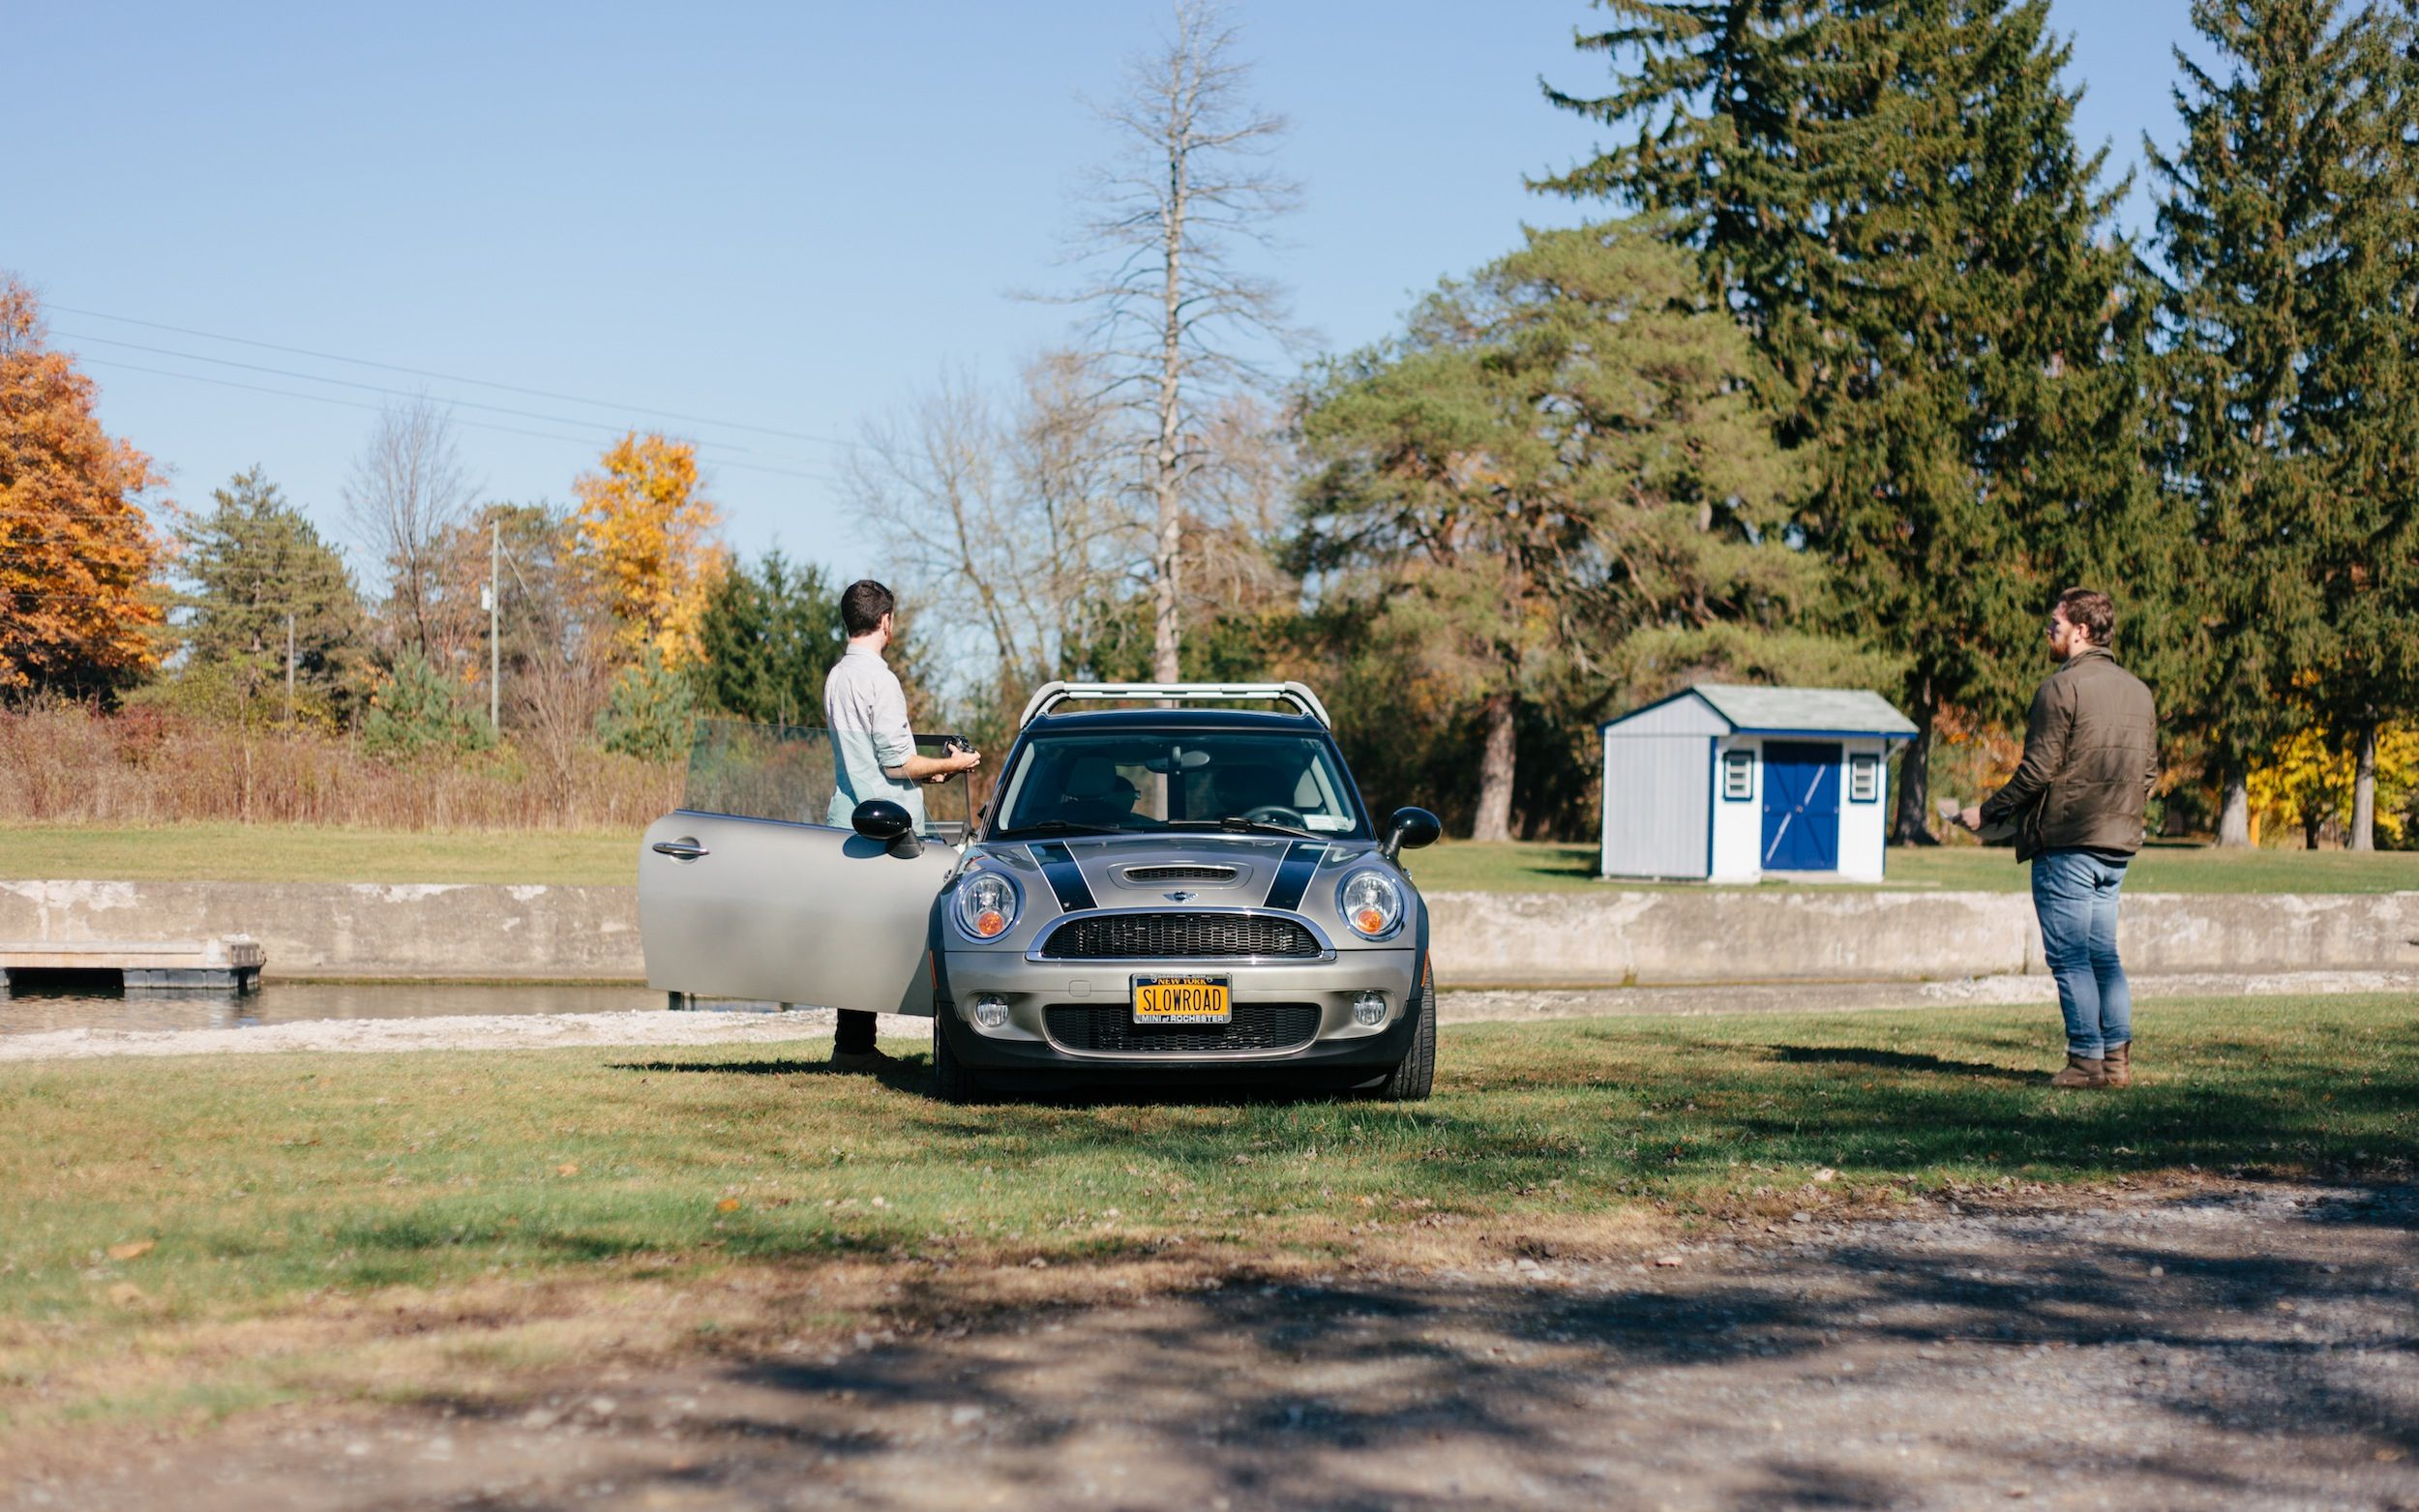 MINI Clubman finds a favourite destination off the beaten track.